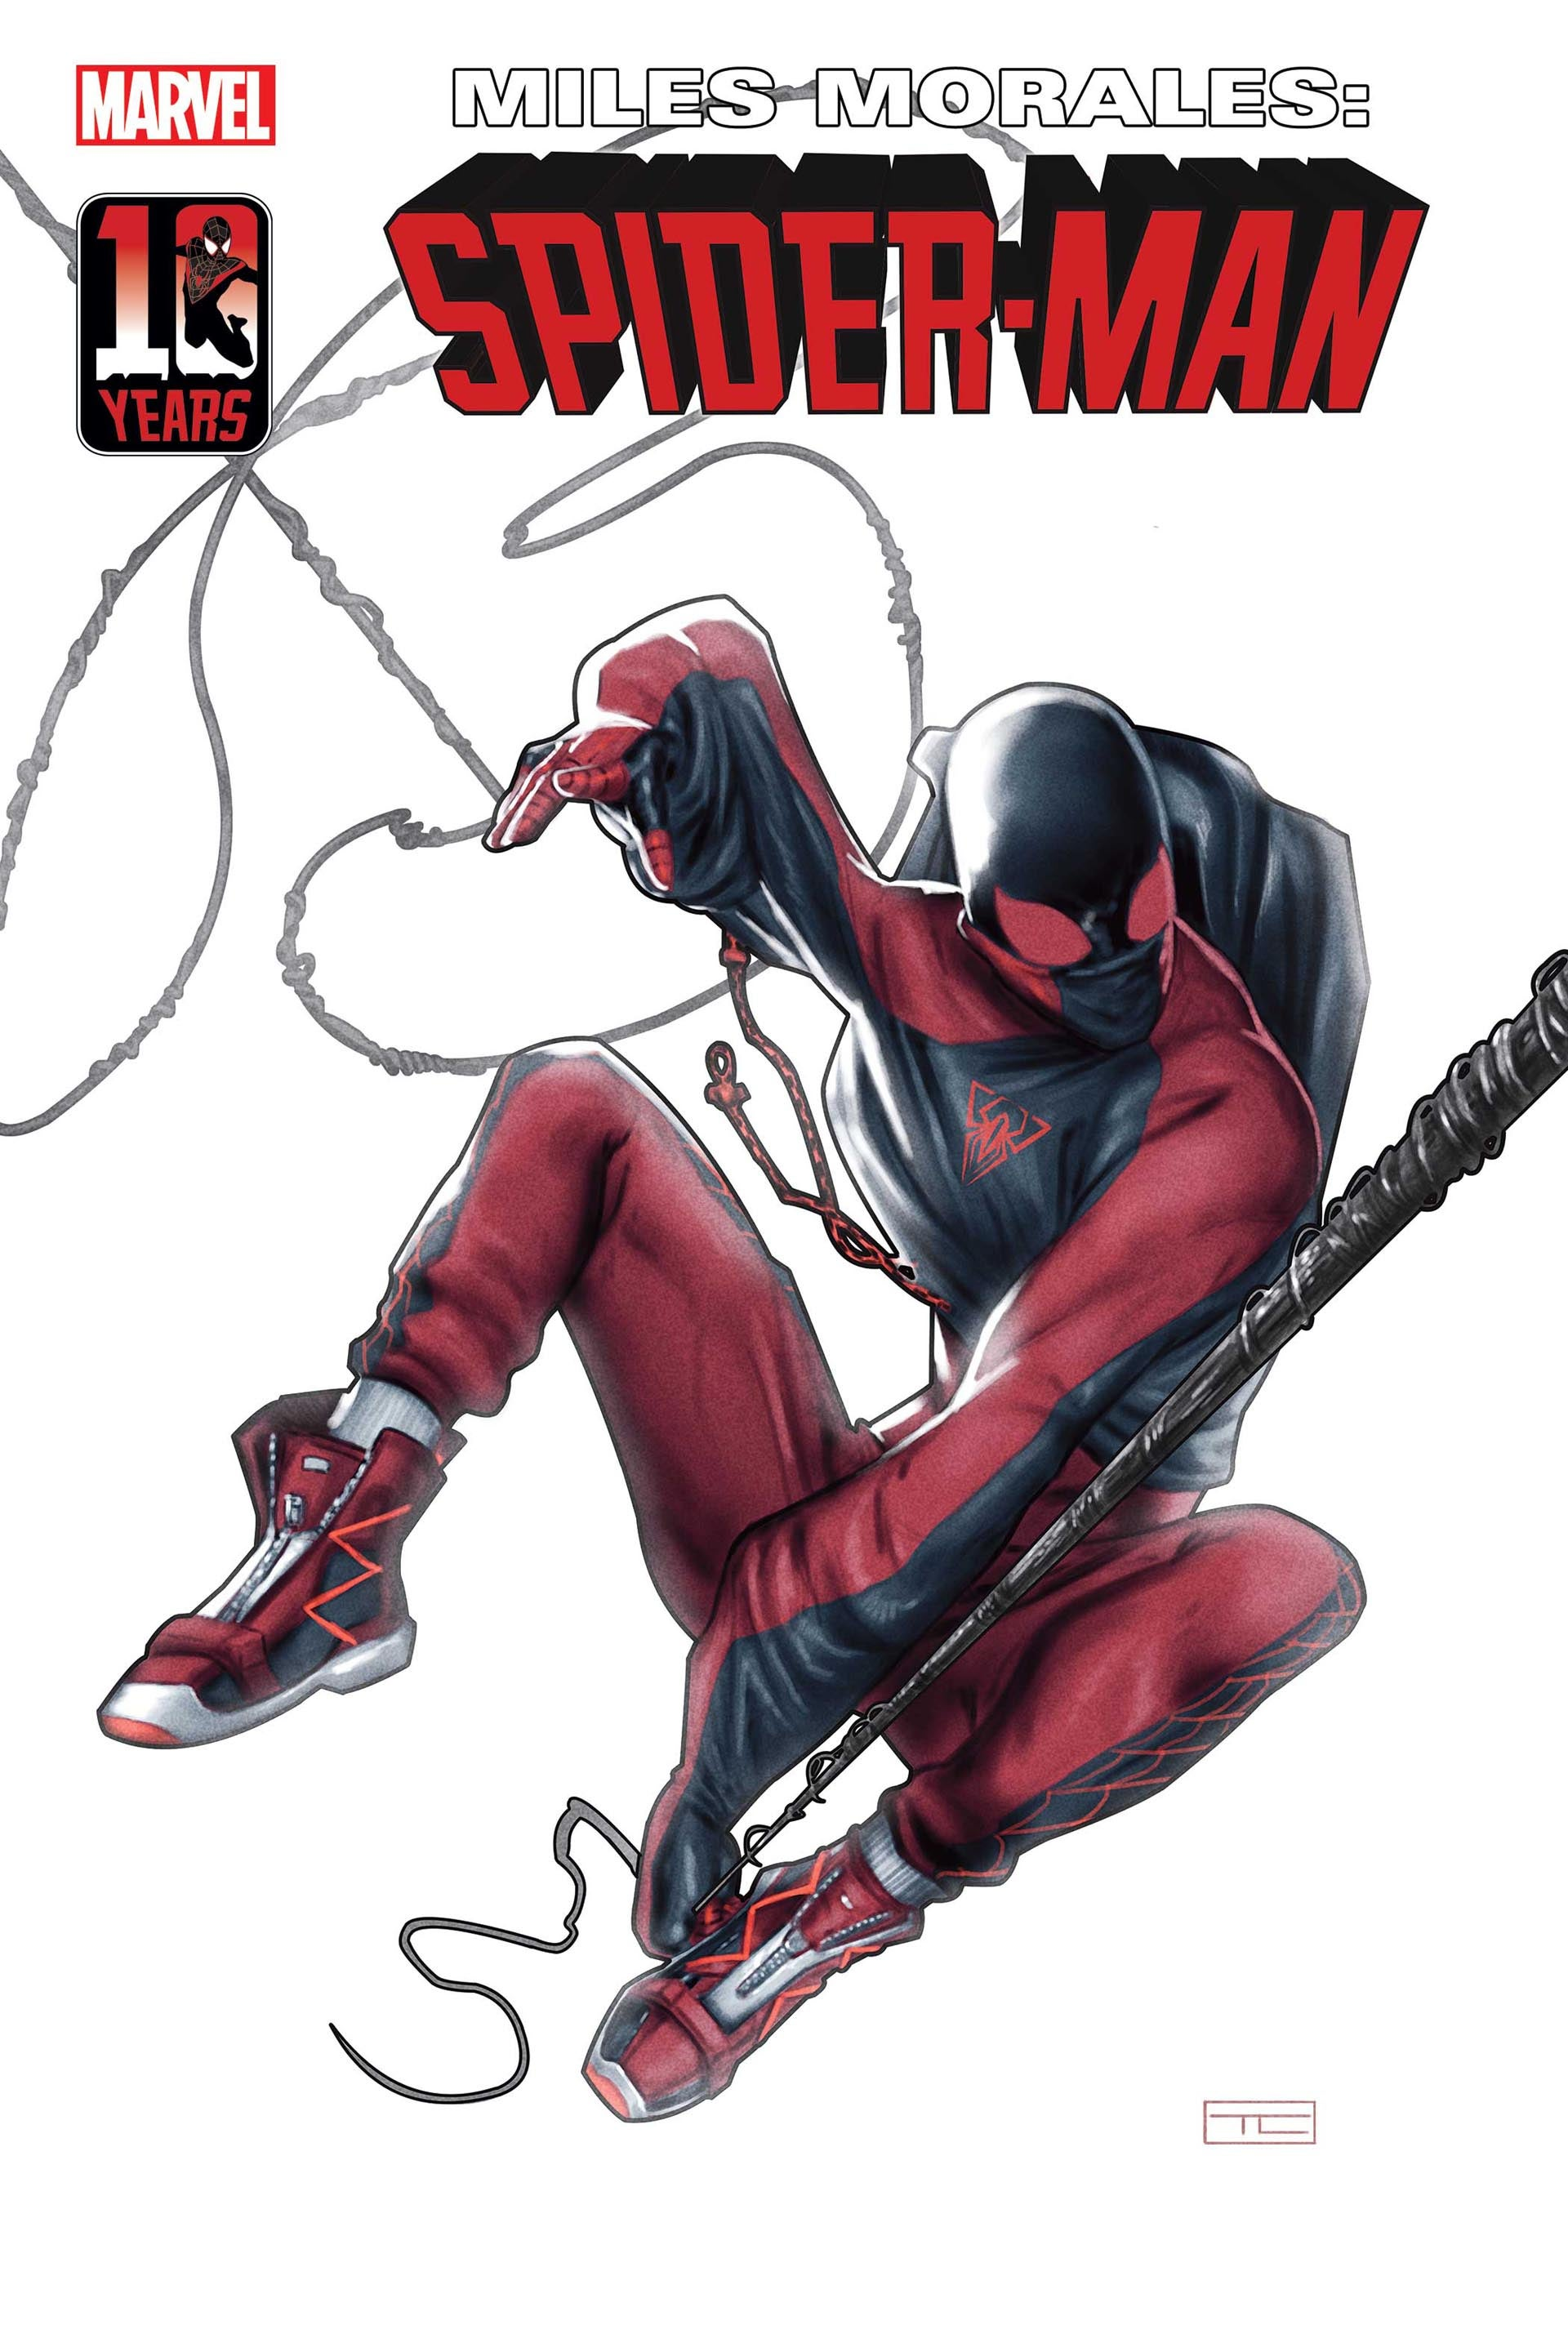 Miles Morales 'Spider-Man' Gets A New Track Suit Costume